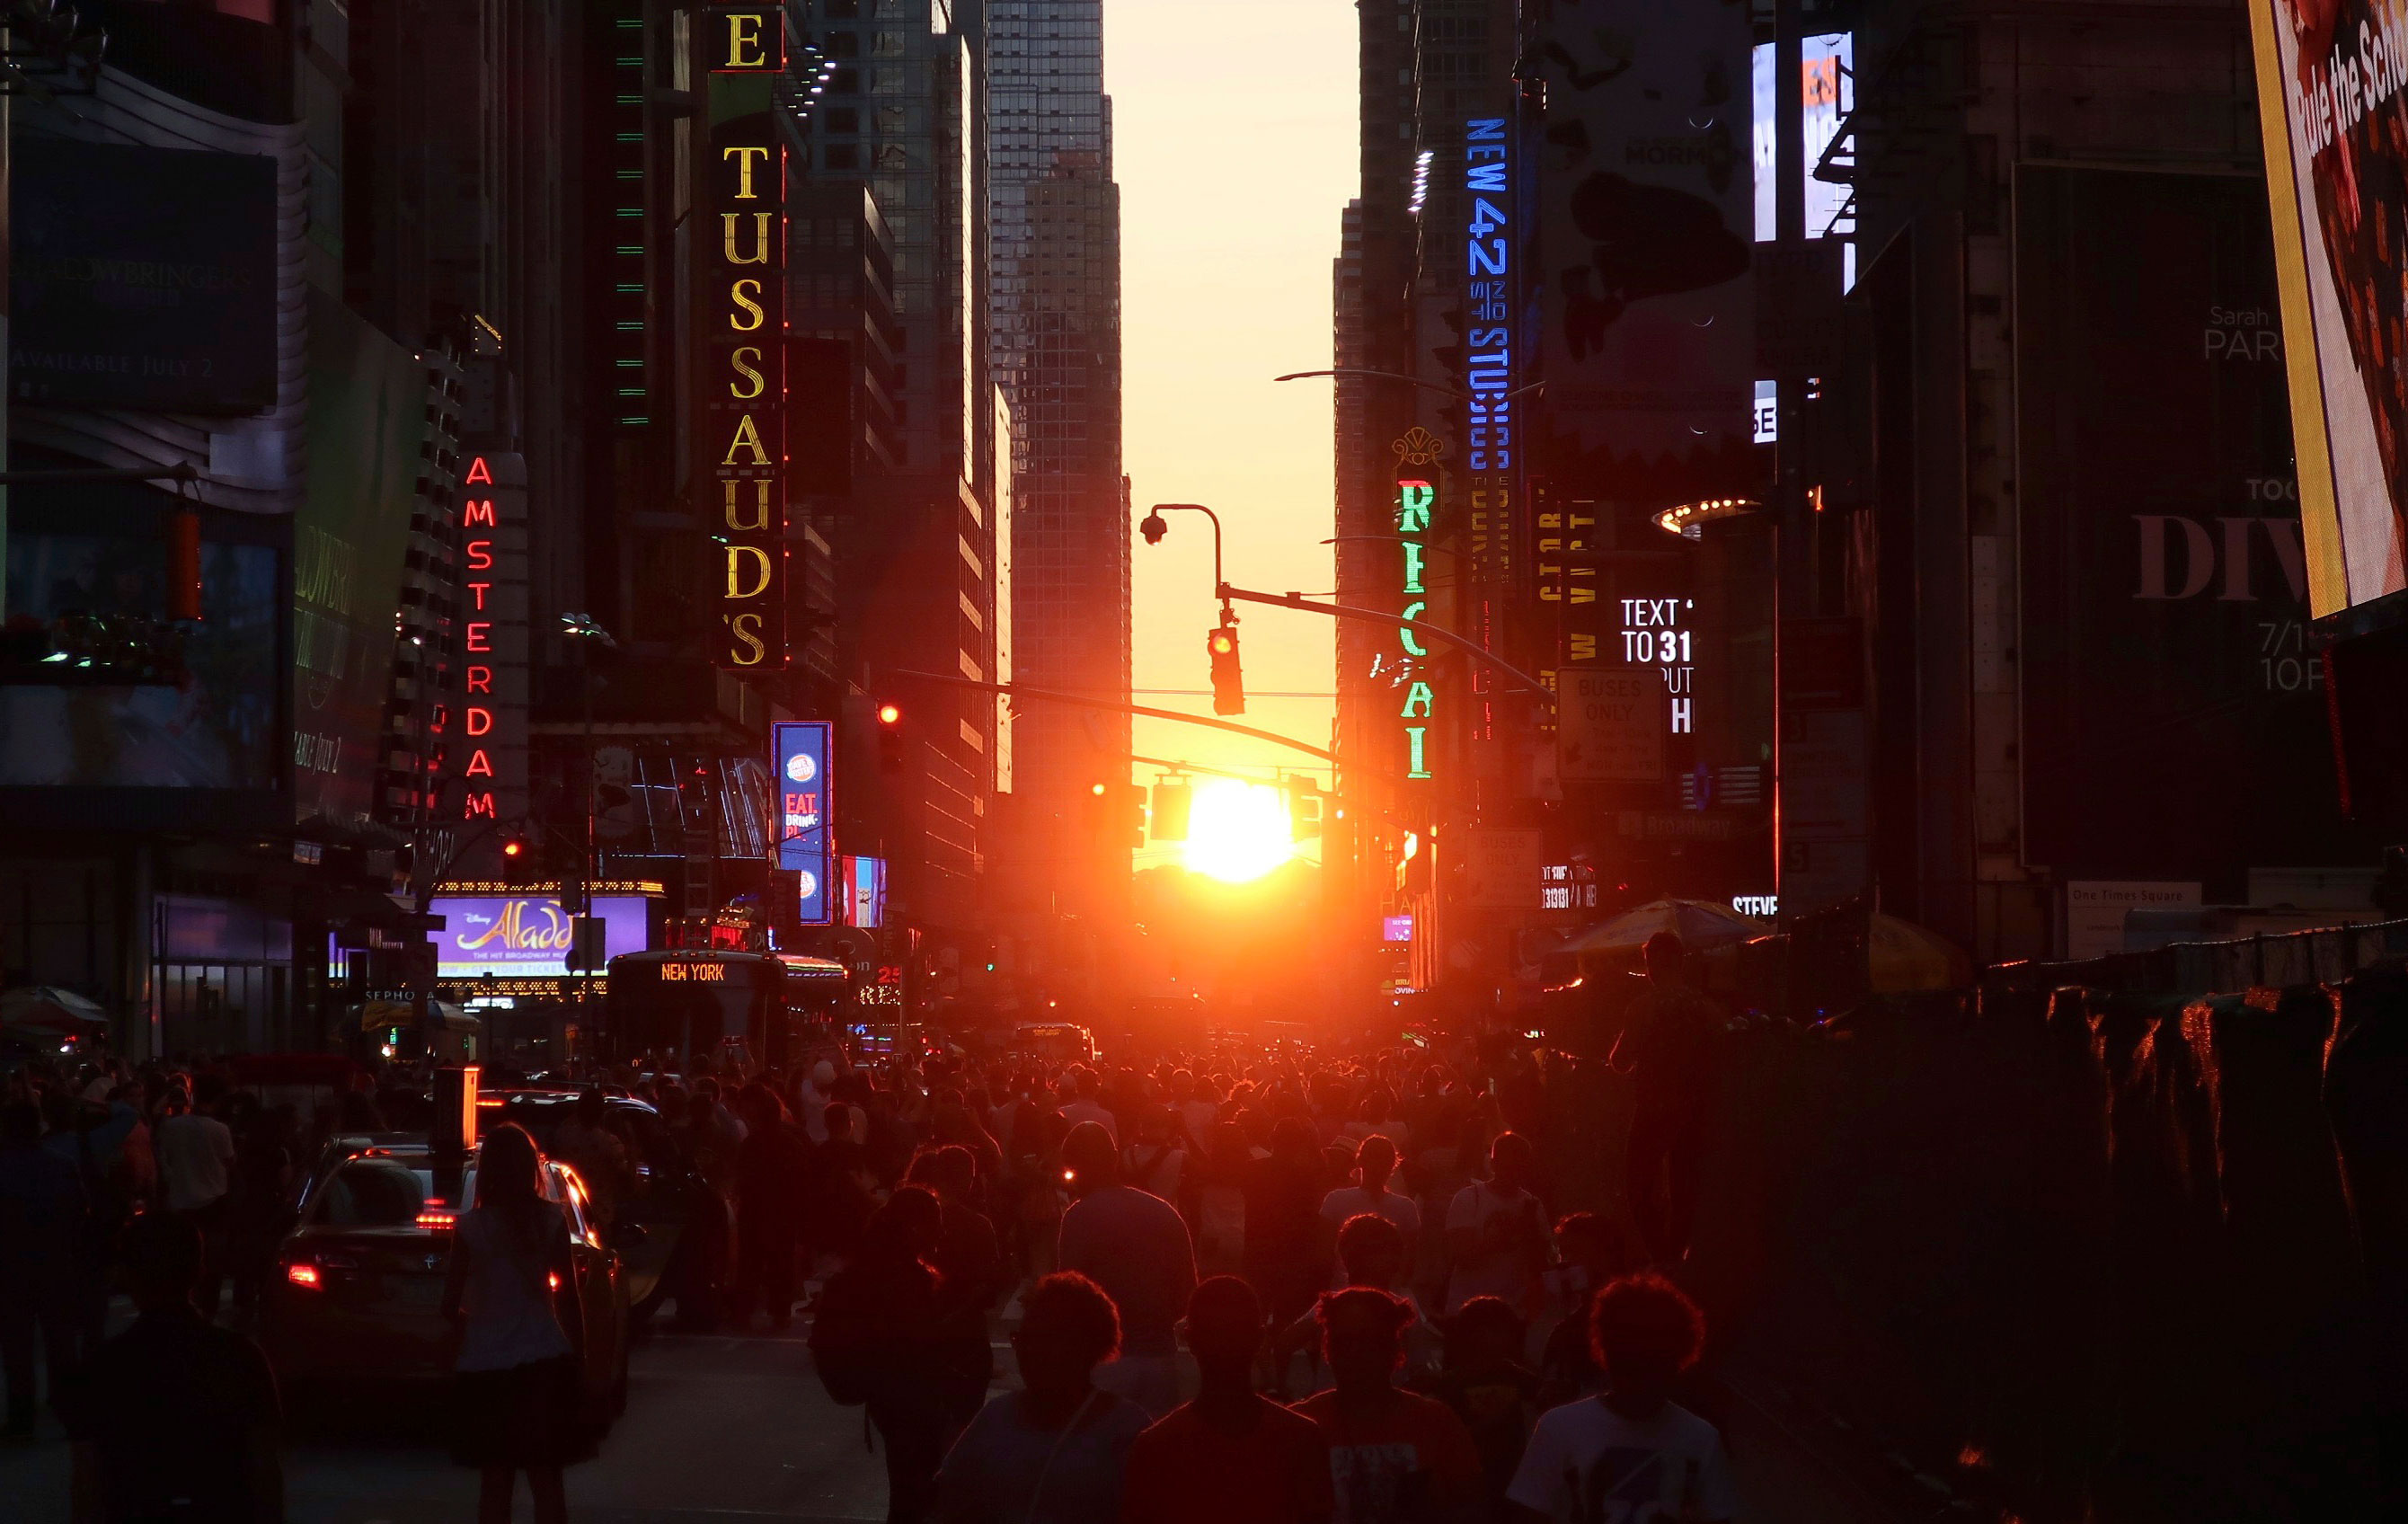 People view a Manhattanhenge sunset on  July 12, 2019, in New York. Manhattanhenge is when the setting sun intersects with the Manhattan street grid. It happens four times a year, but clouds often block the view.